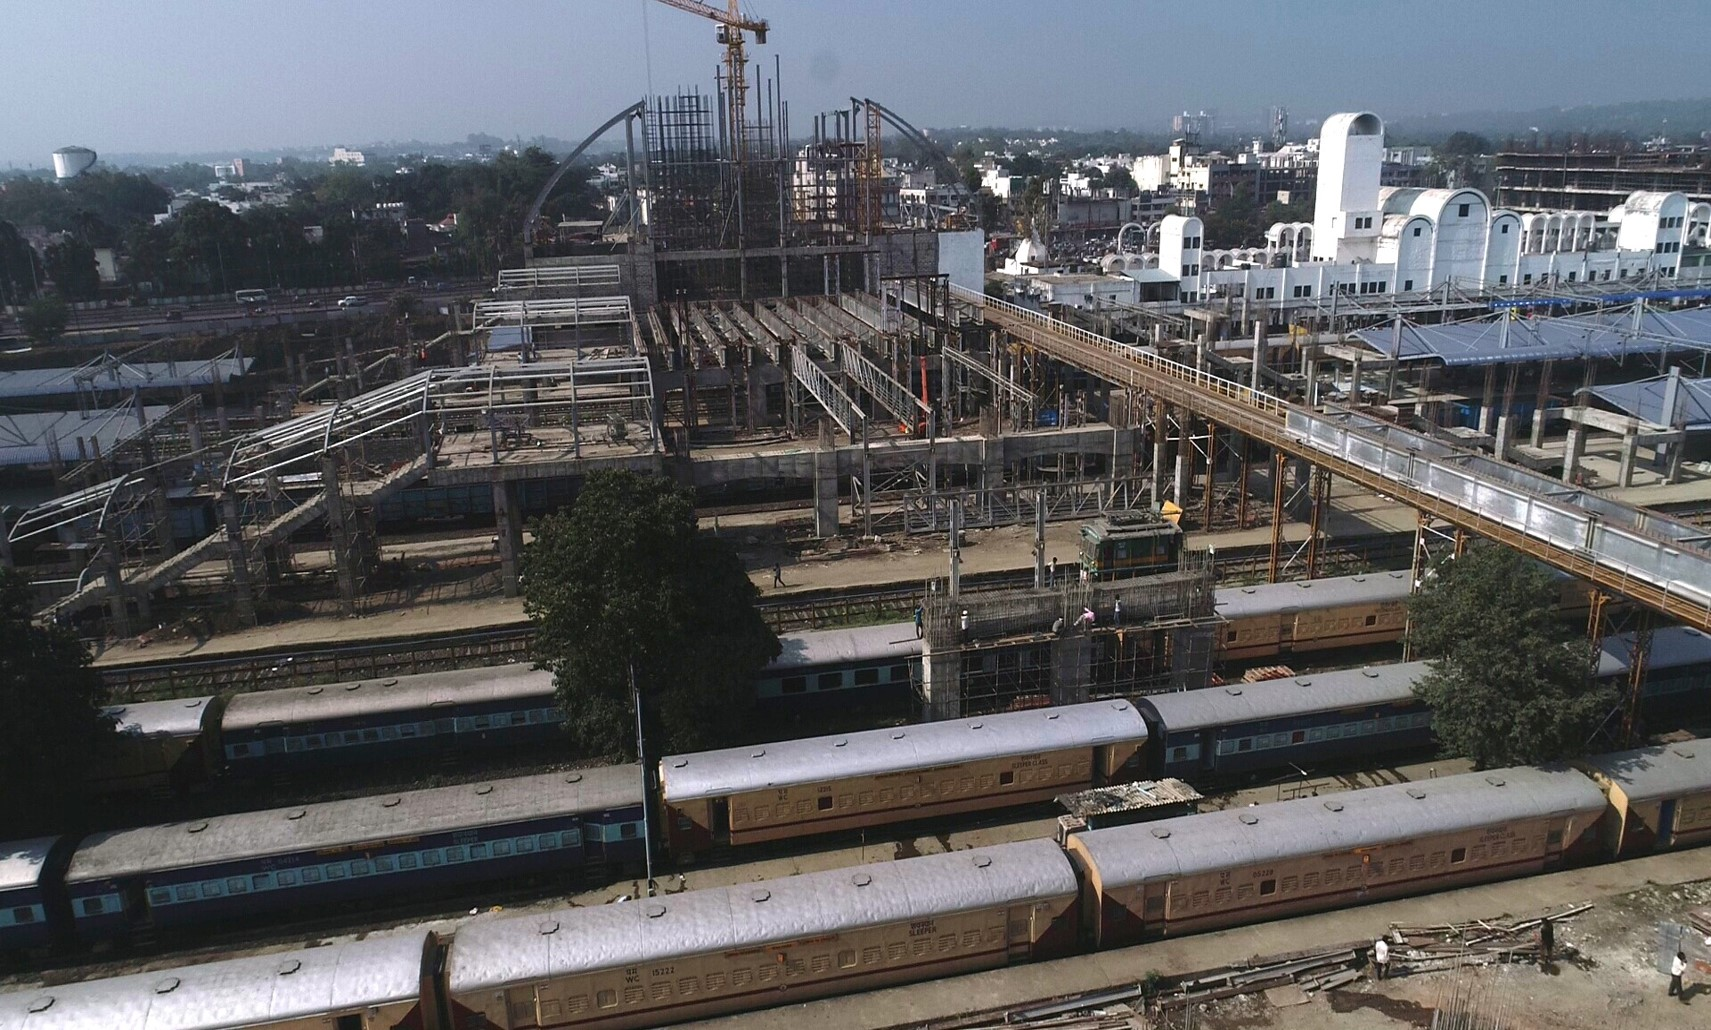 West Building Dome erection, Air concourse span 1 girder lowering on beam. Air concourse lobby : cover in progress at Itarsi end at Habibganj Railway Station